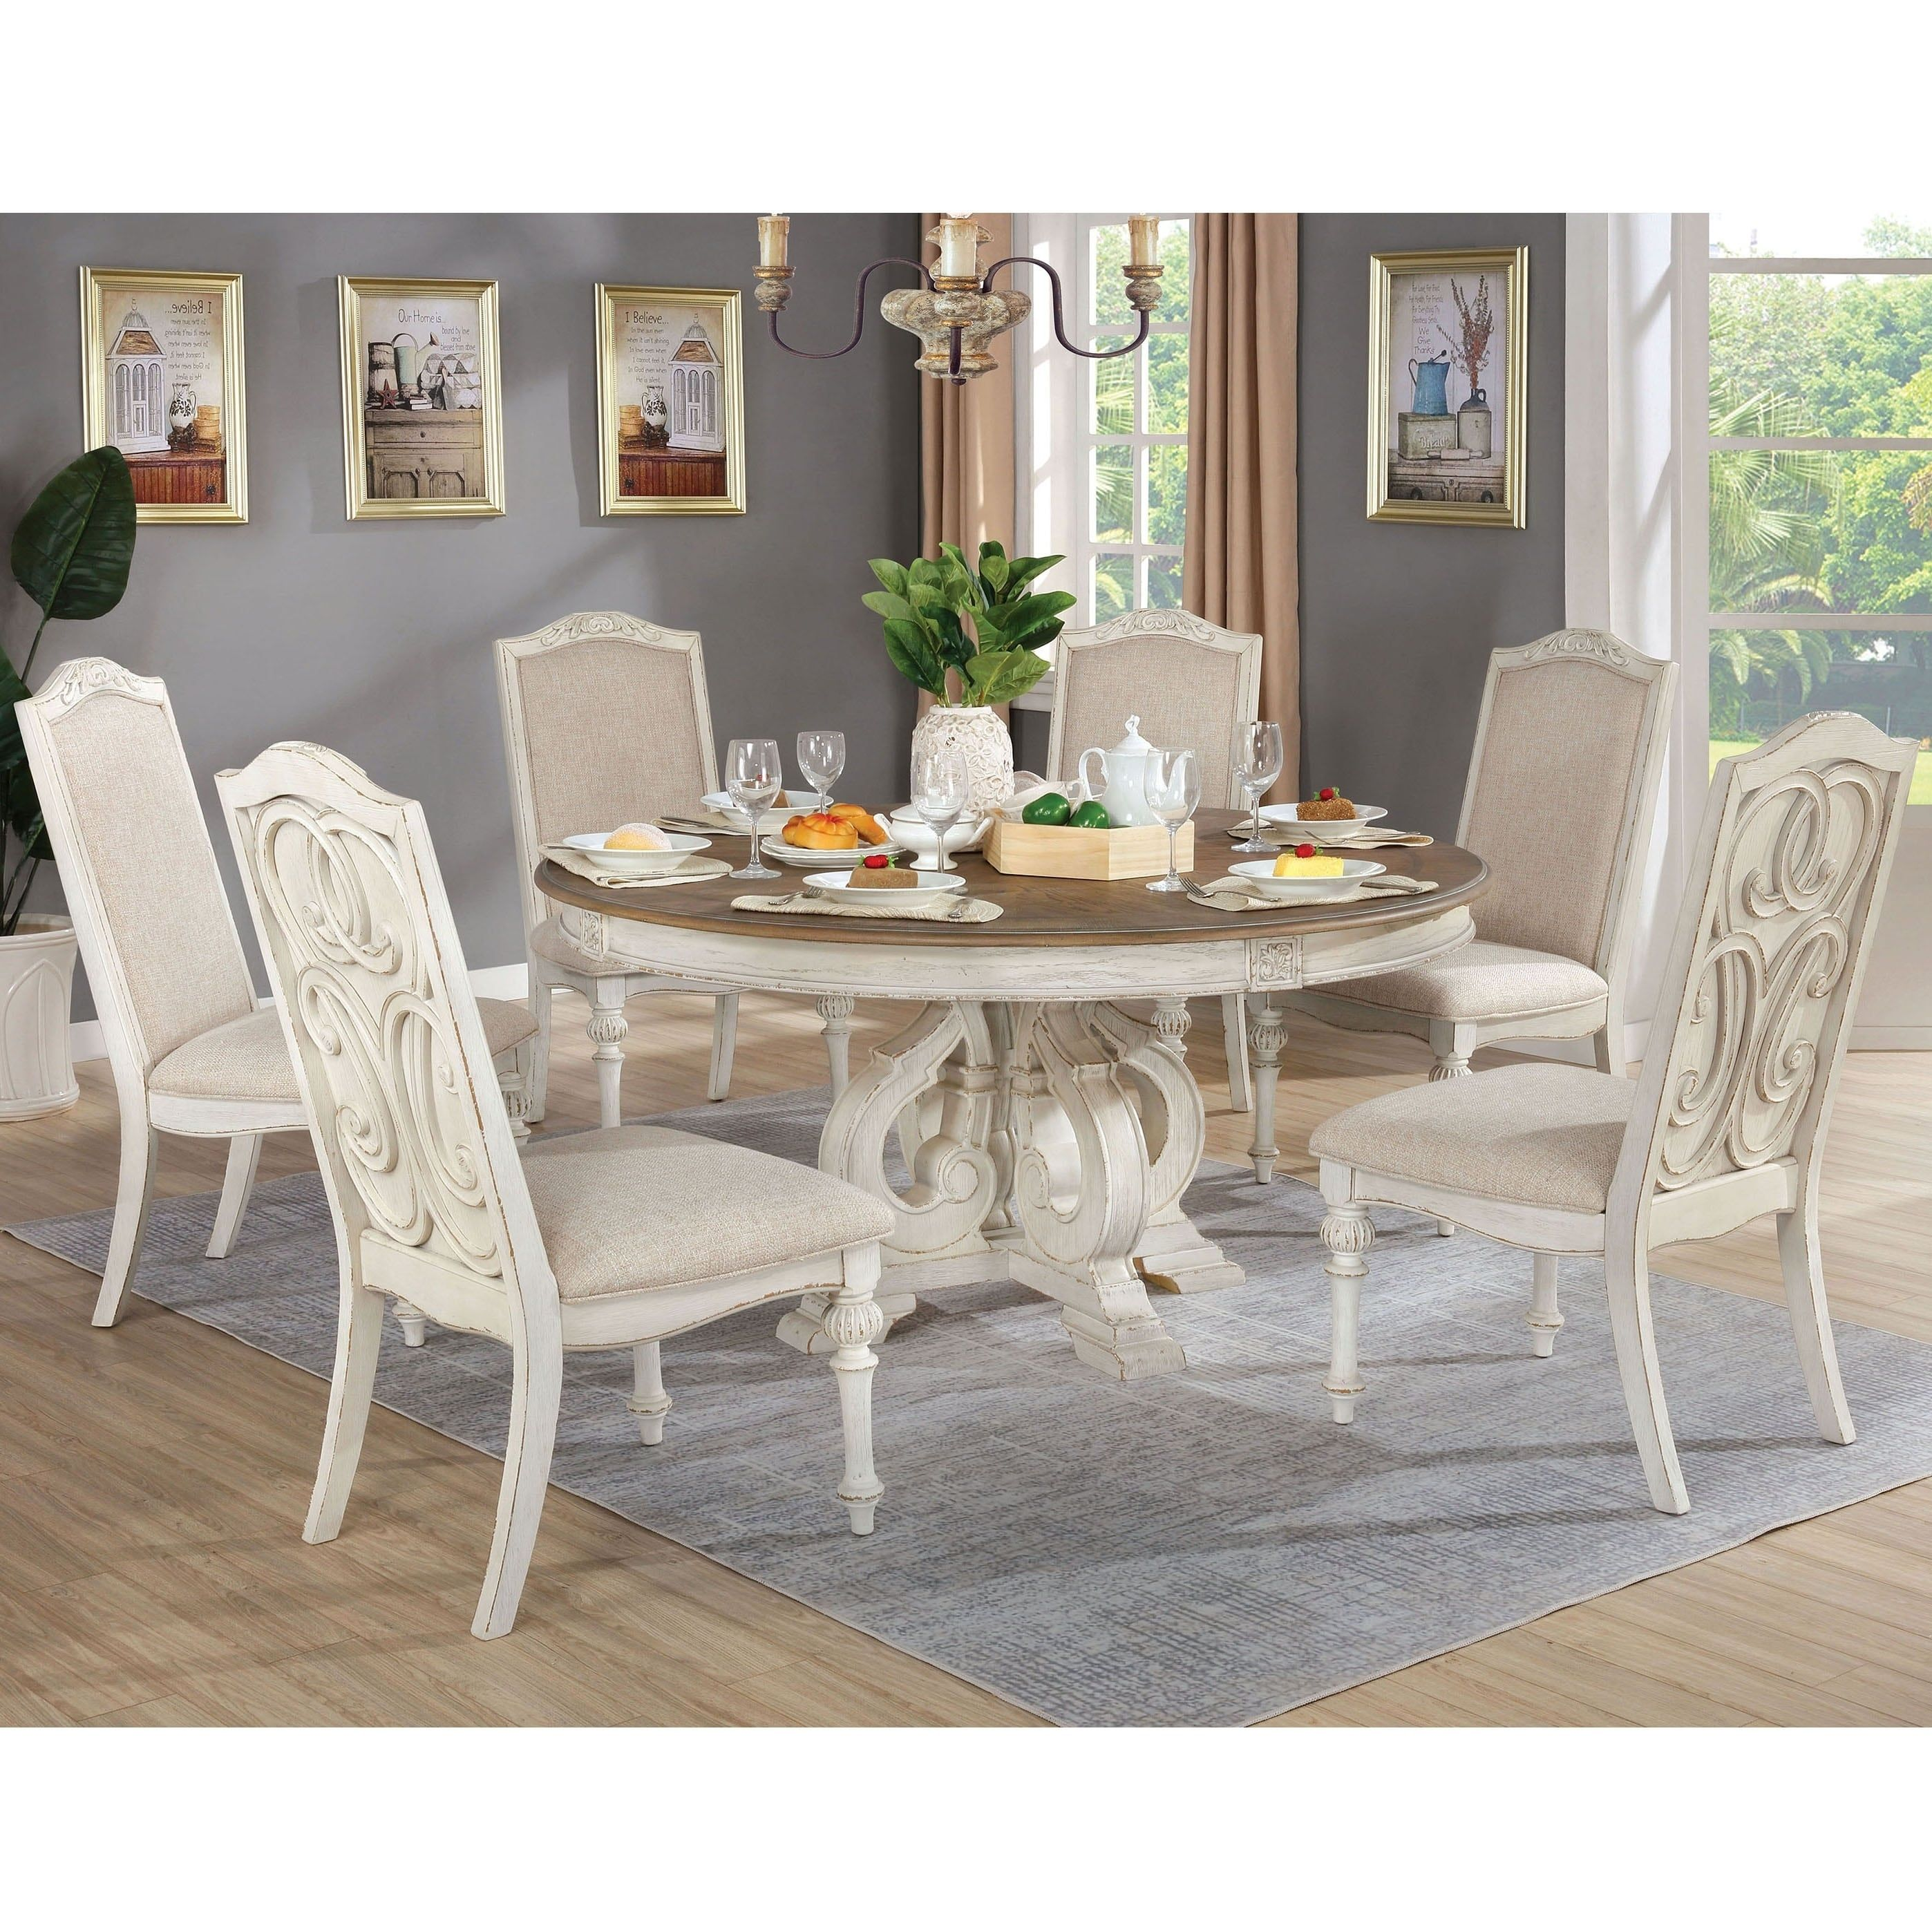 Overstock Com Online Shopping Bedding Furniture Electronics Jewelry Clothing More White Round Dining Table Round Dining Table Round Dining Set